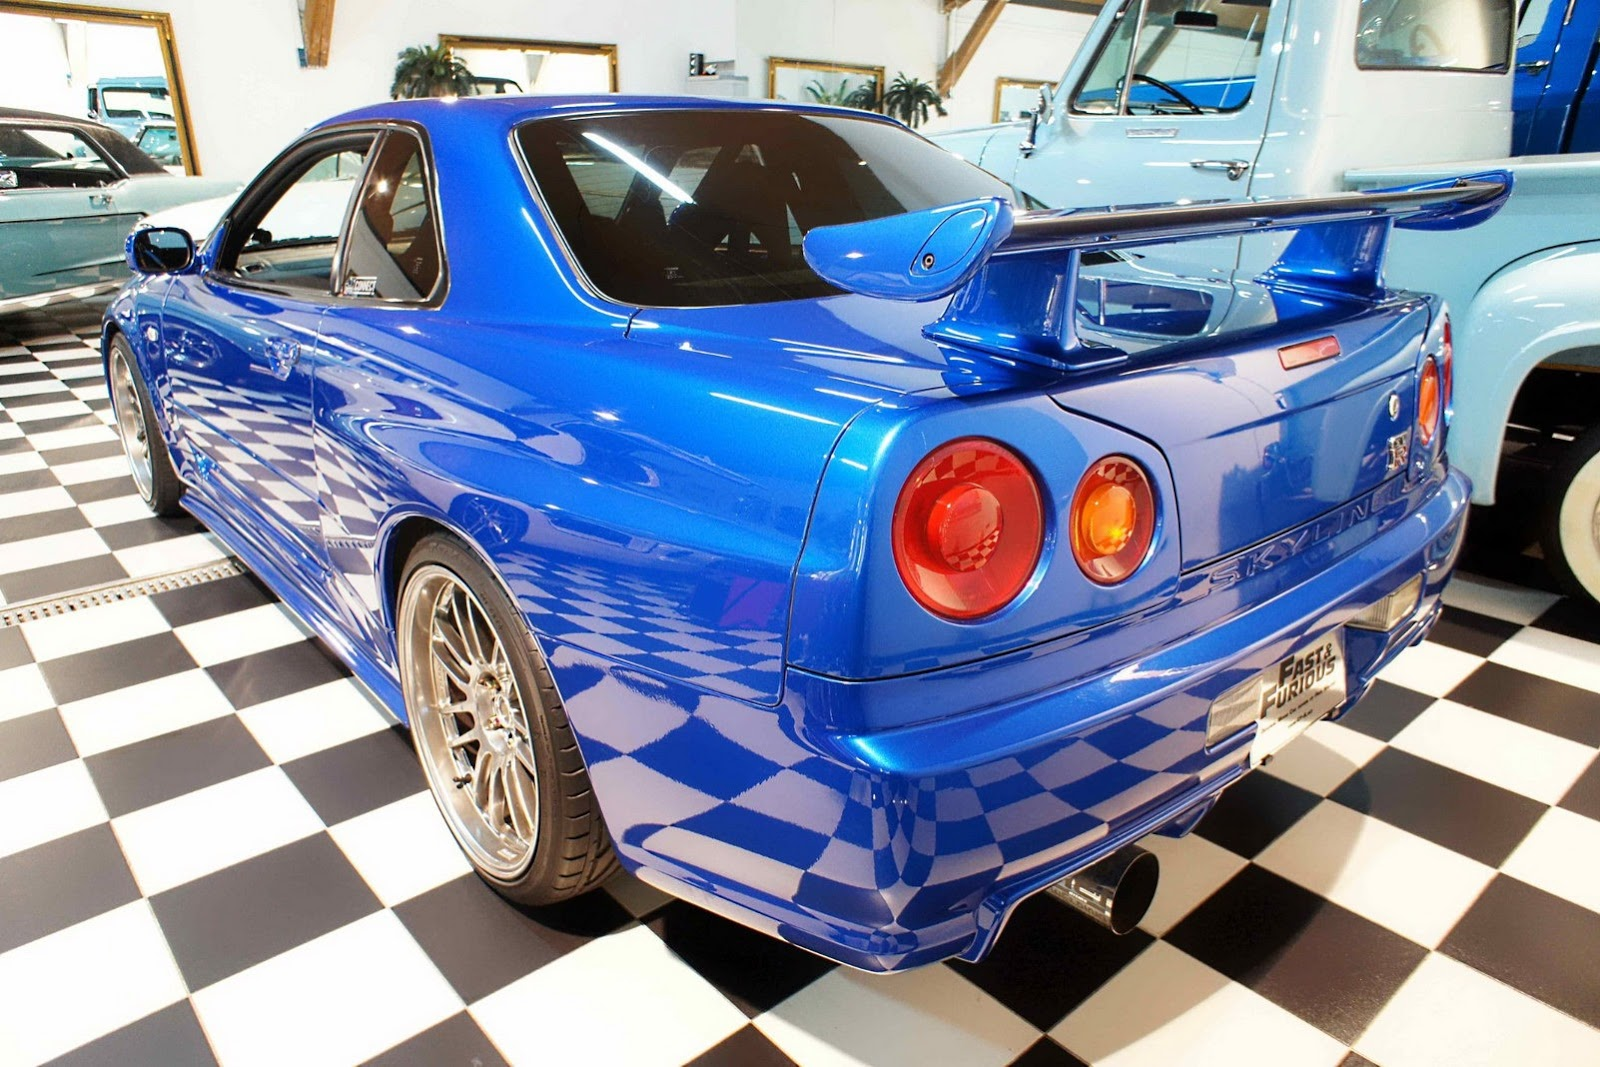 Nissan Cars - News: R34 Skyline driven by Paul Walker up ...